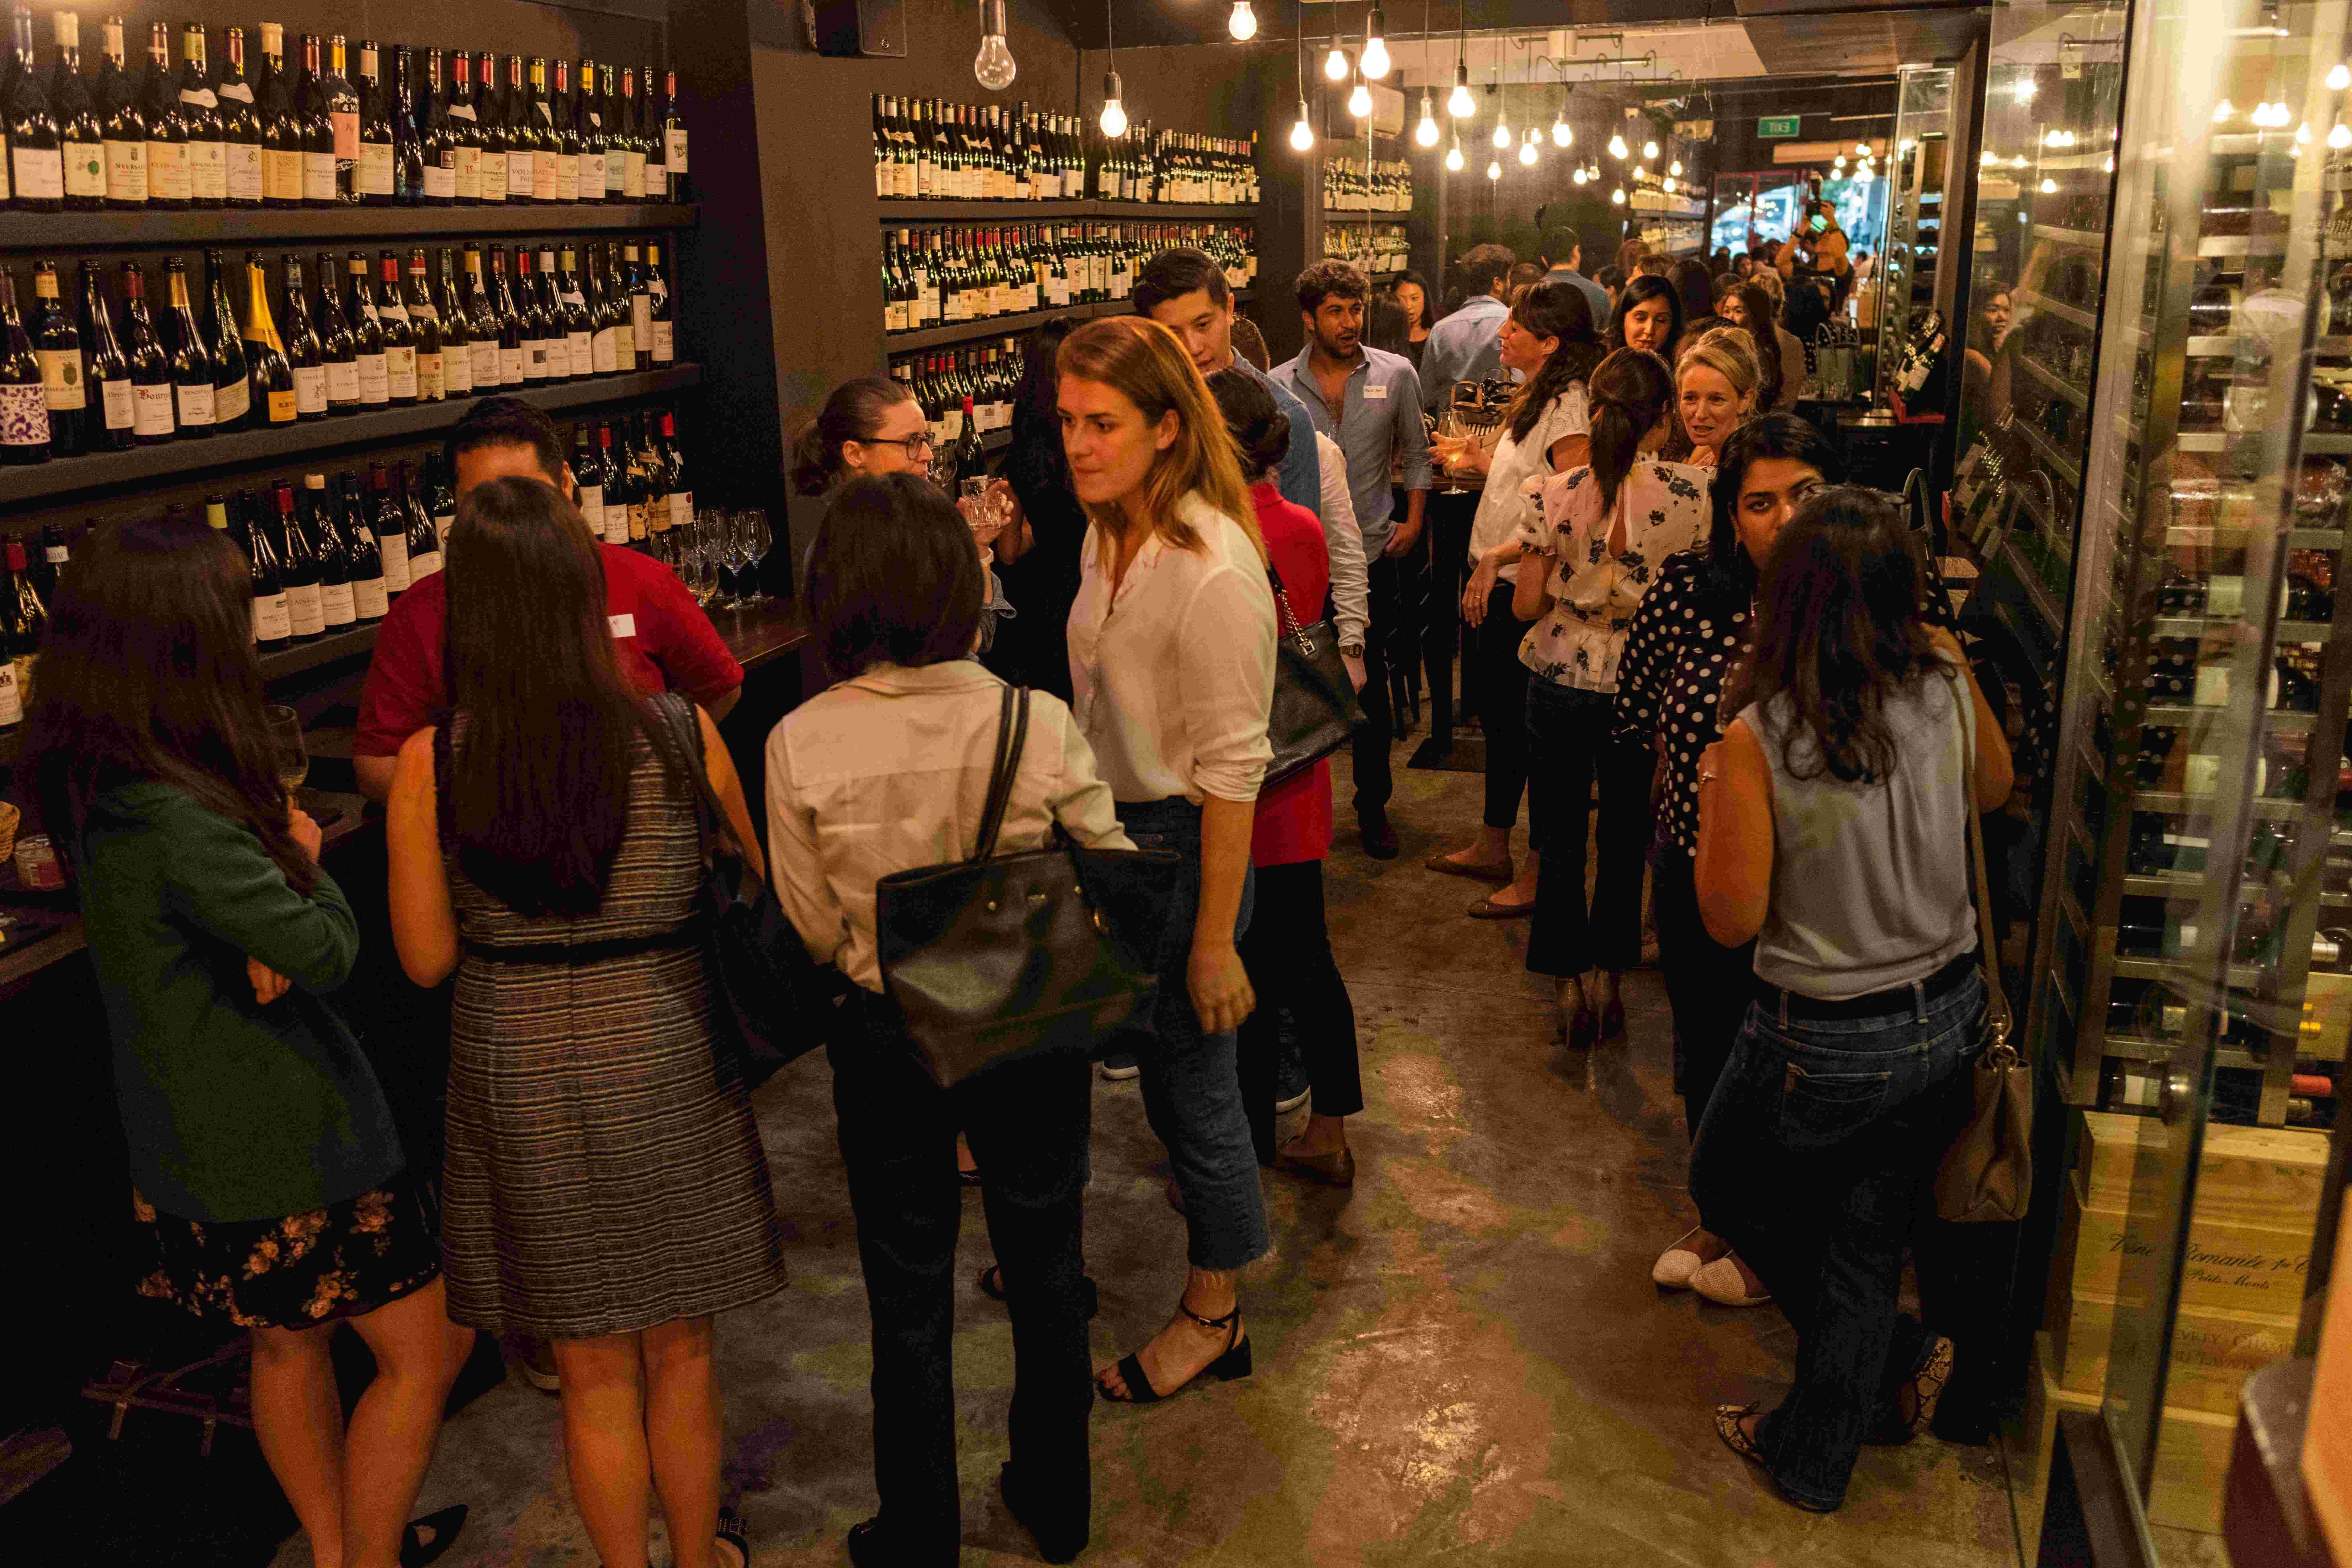 group of people in wine bar